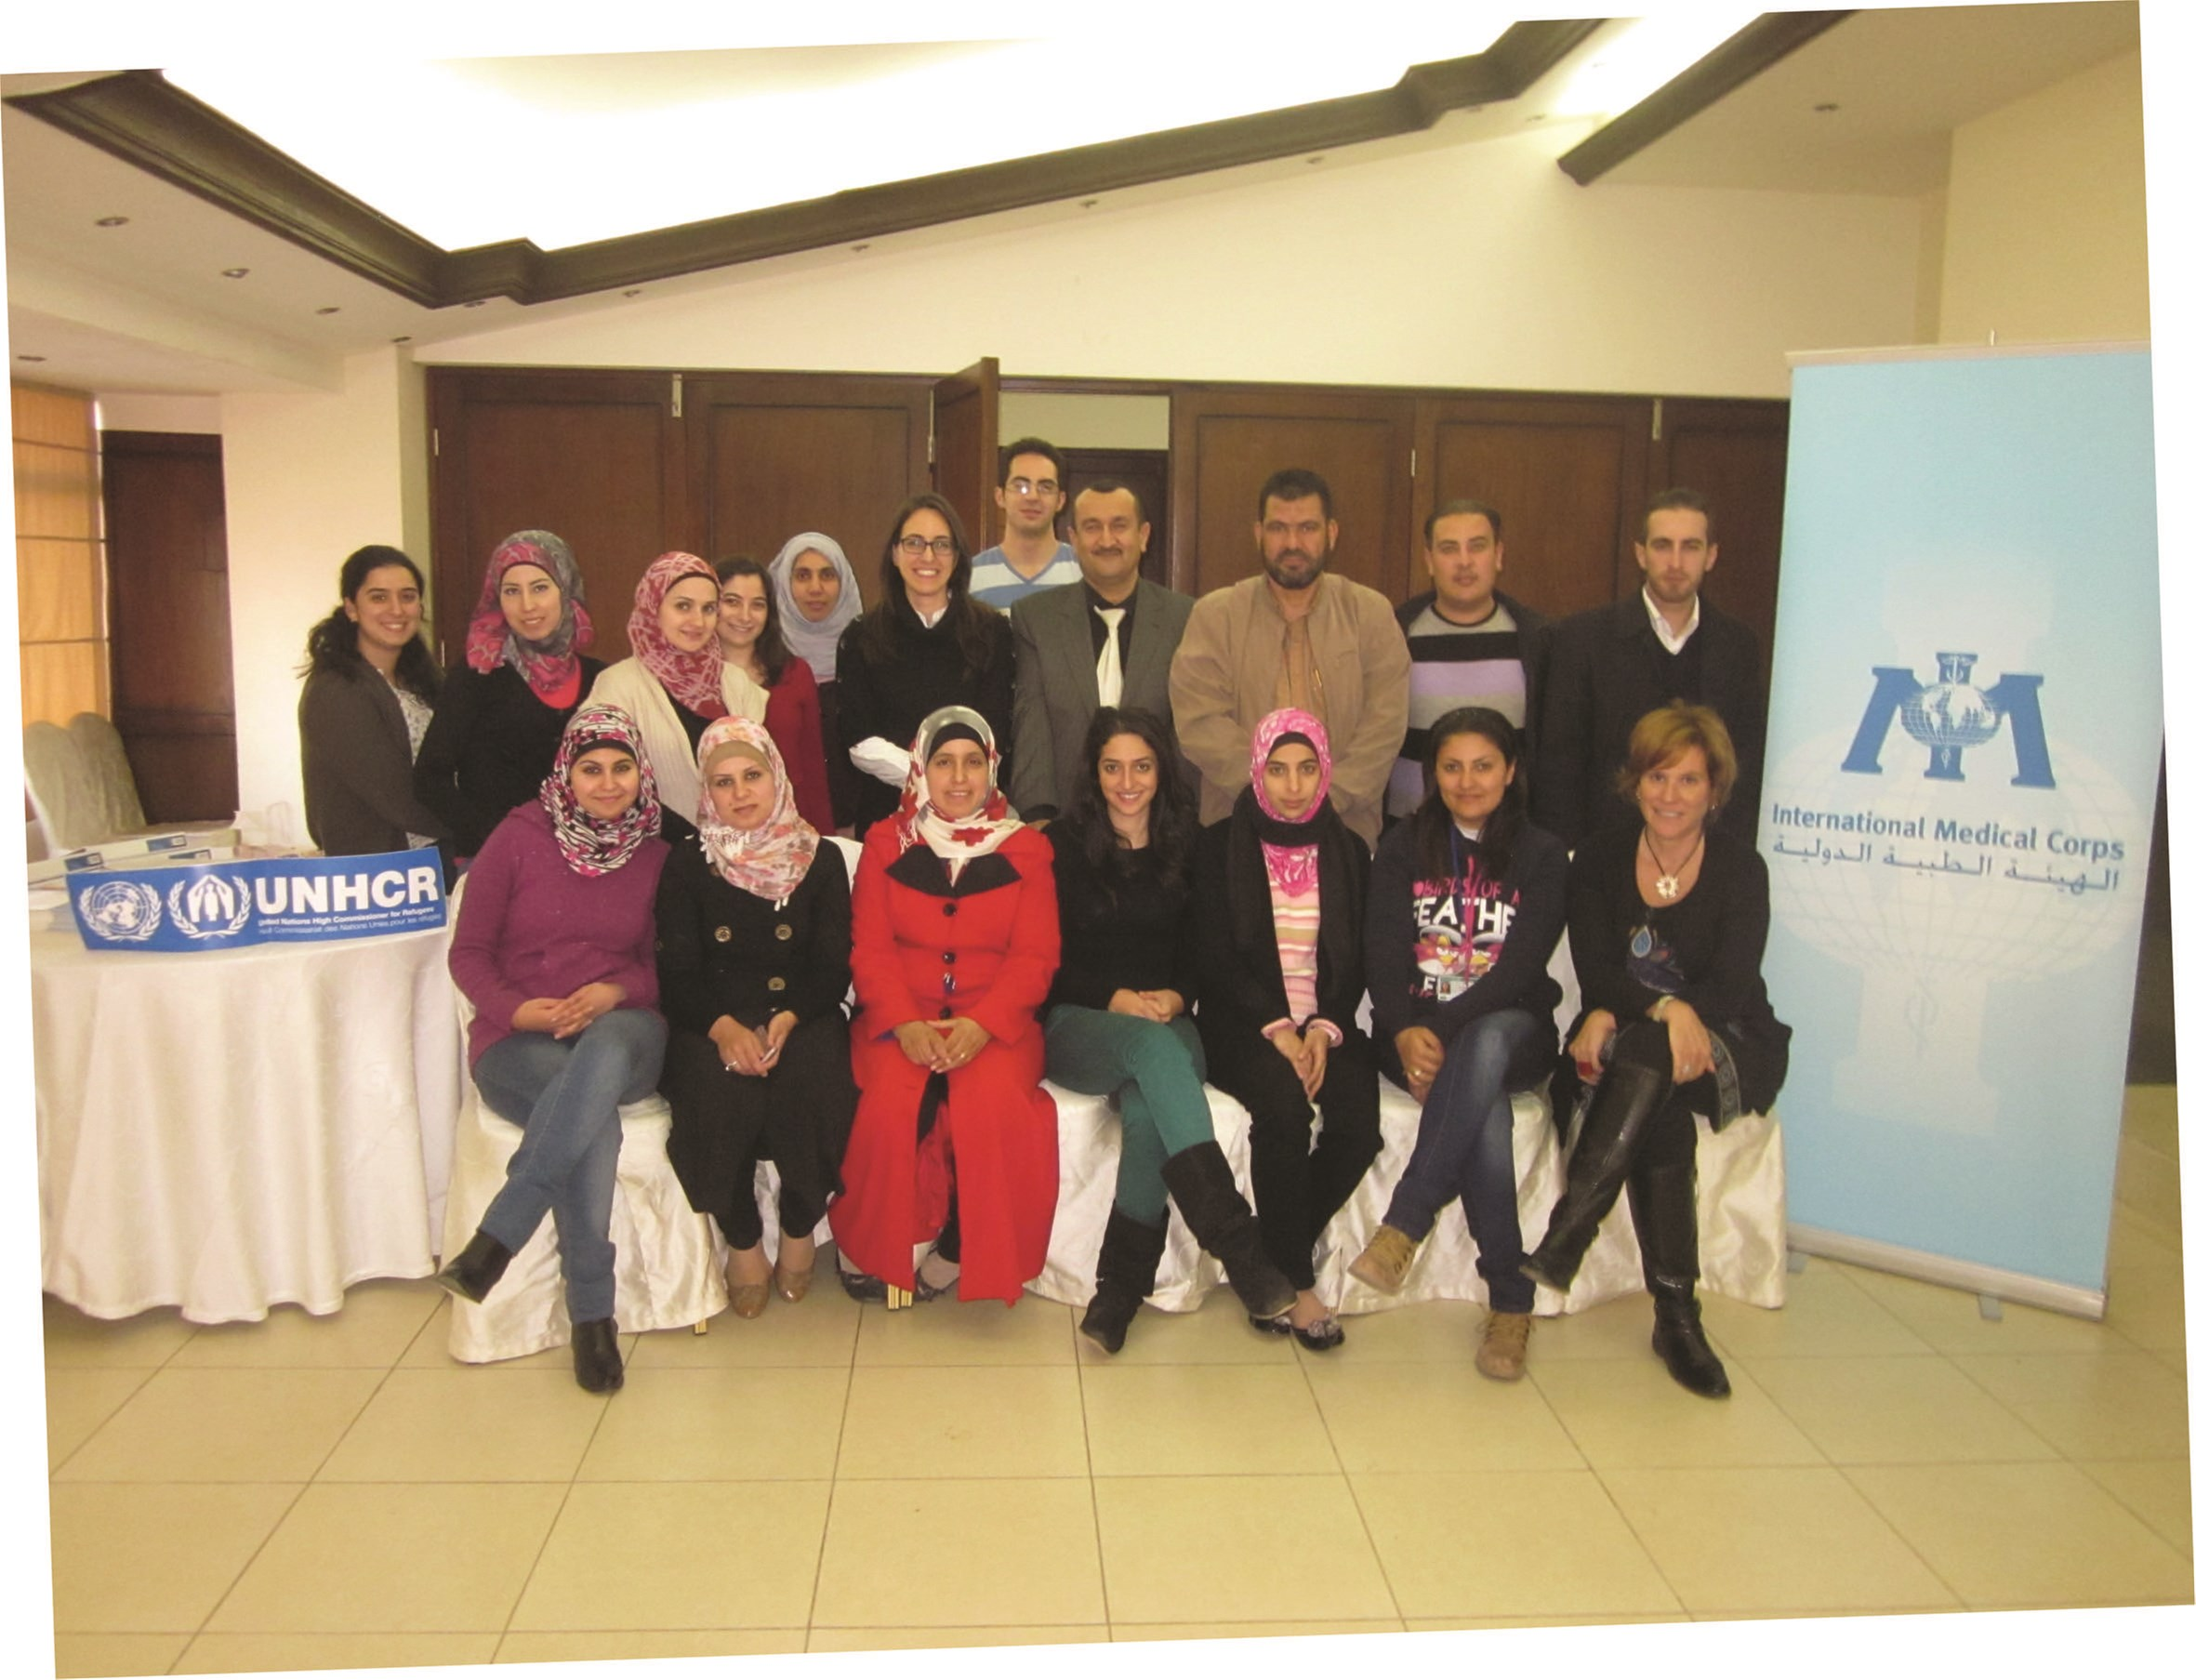 Participants in the NIE training in Jordan in 2012